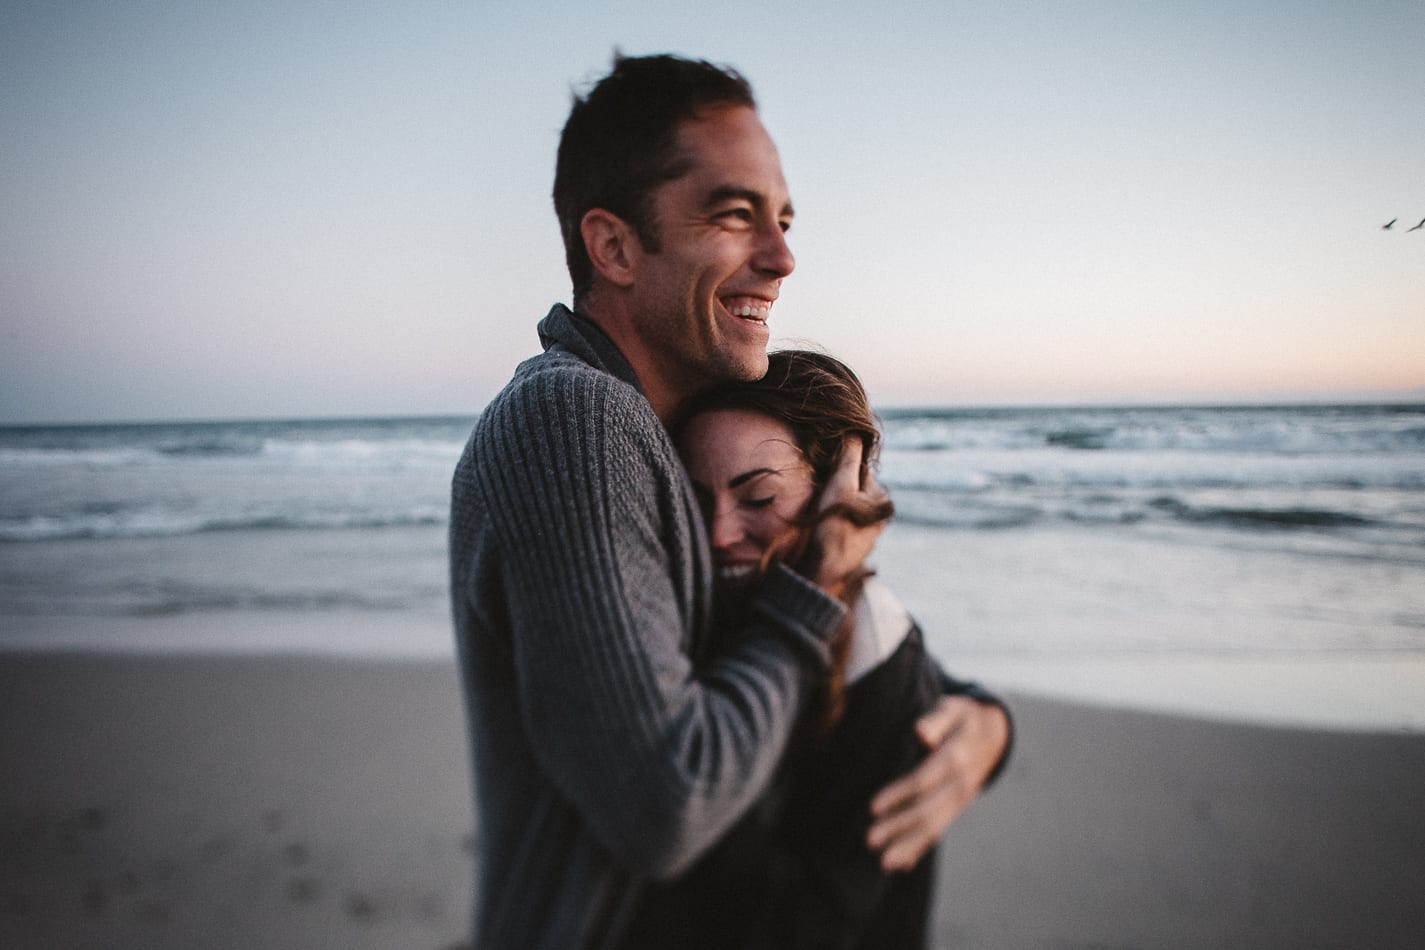 jason-alyssa-huntington-beach-california-engagement-photographer-43